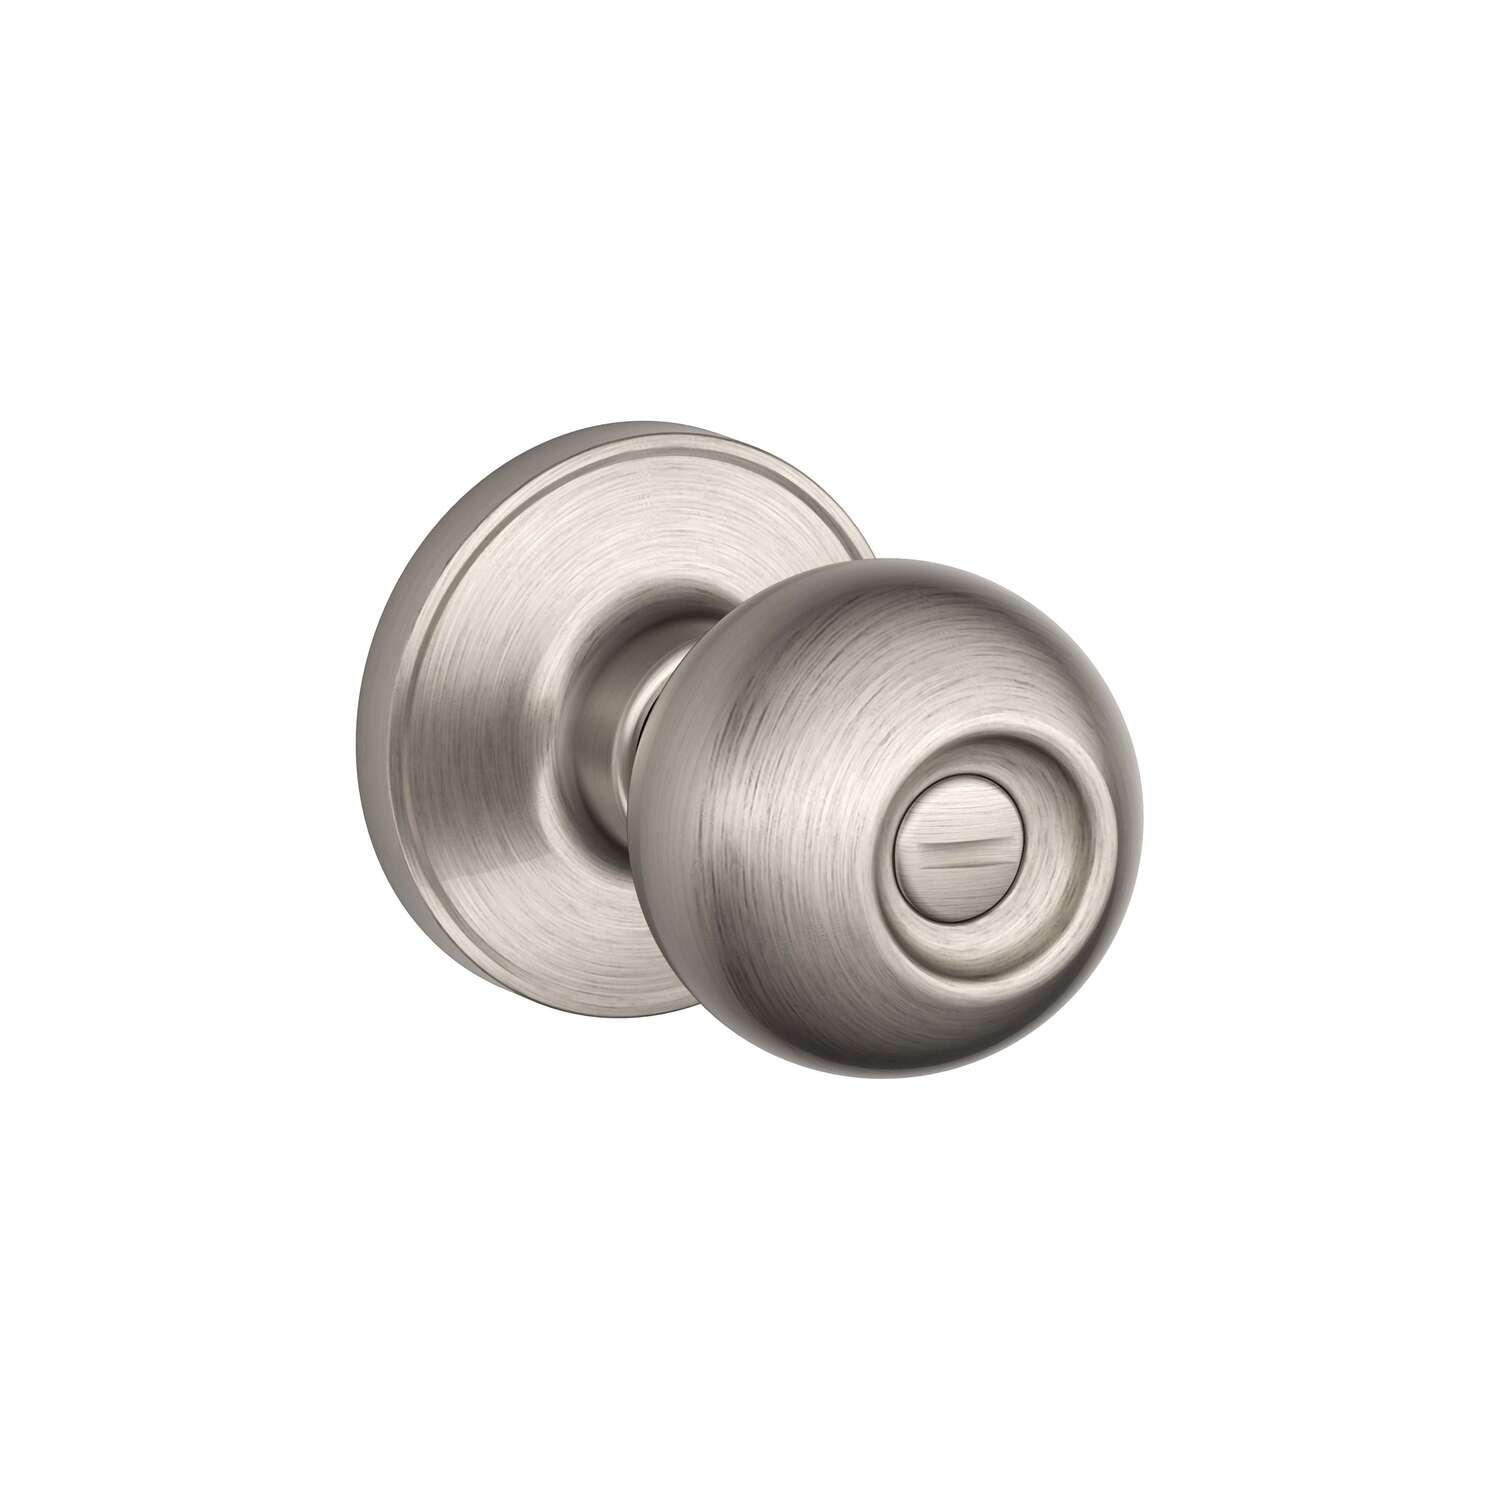 Schlage  Dexter  Corona  Satin Nickel  Brass  Privacy Knob  3  Right or Left Handed